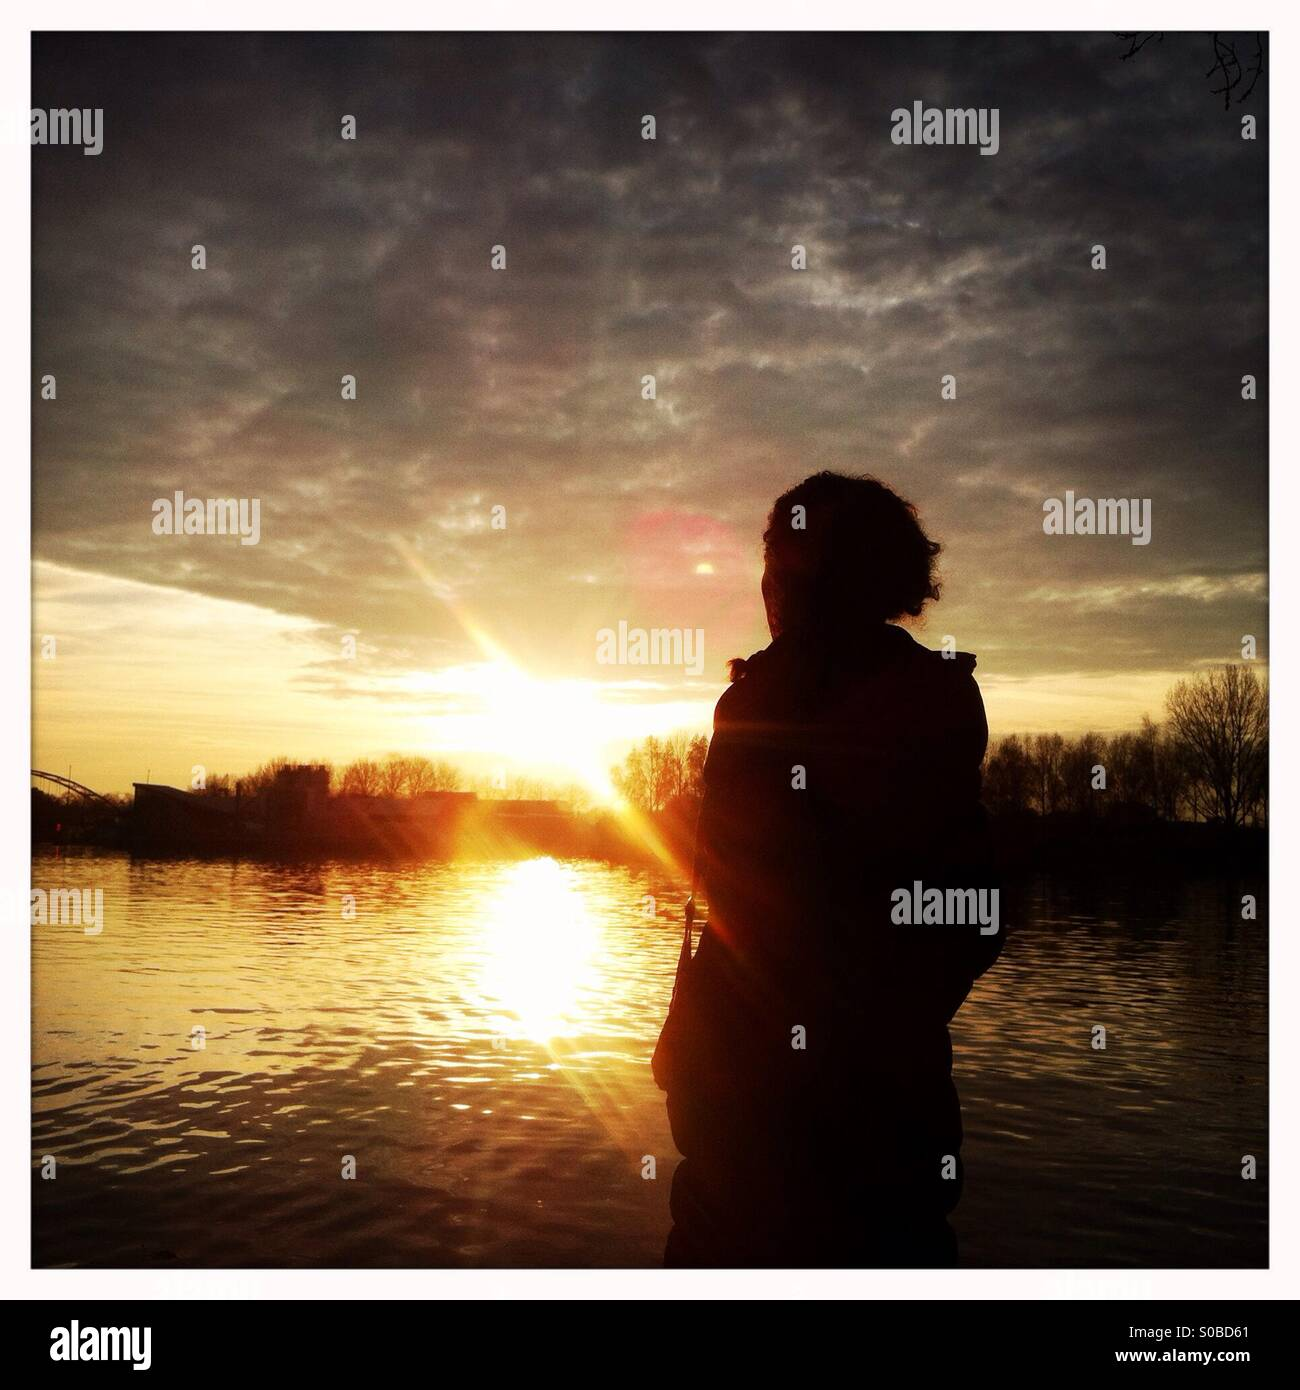 Woman standing near a lake and looking at a sunset - Stock Image